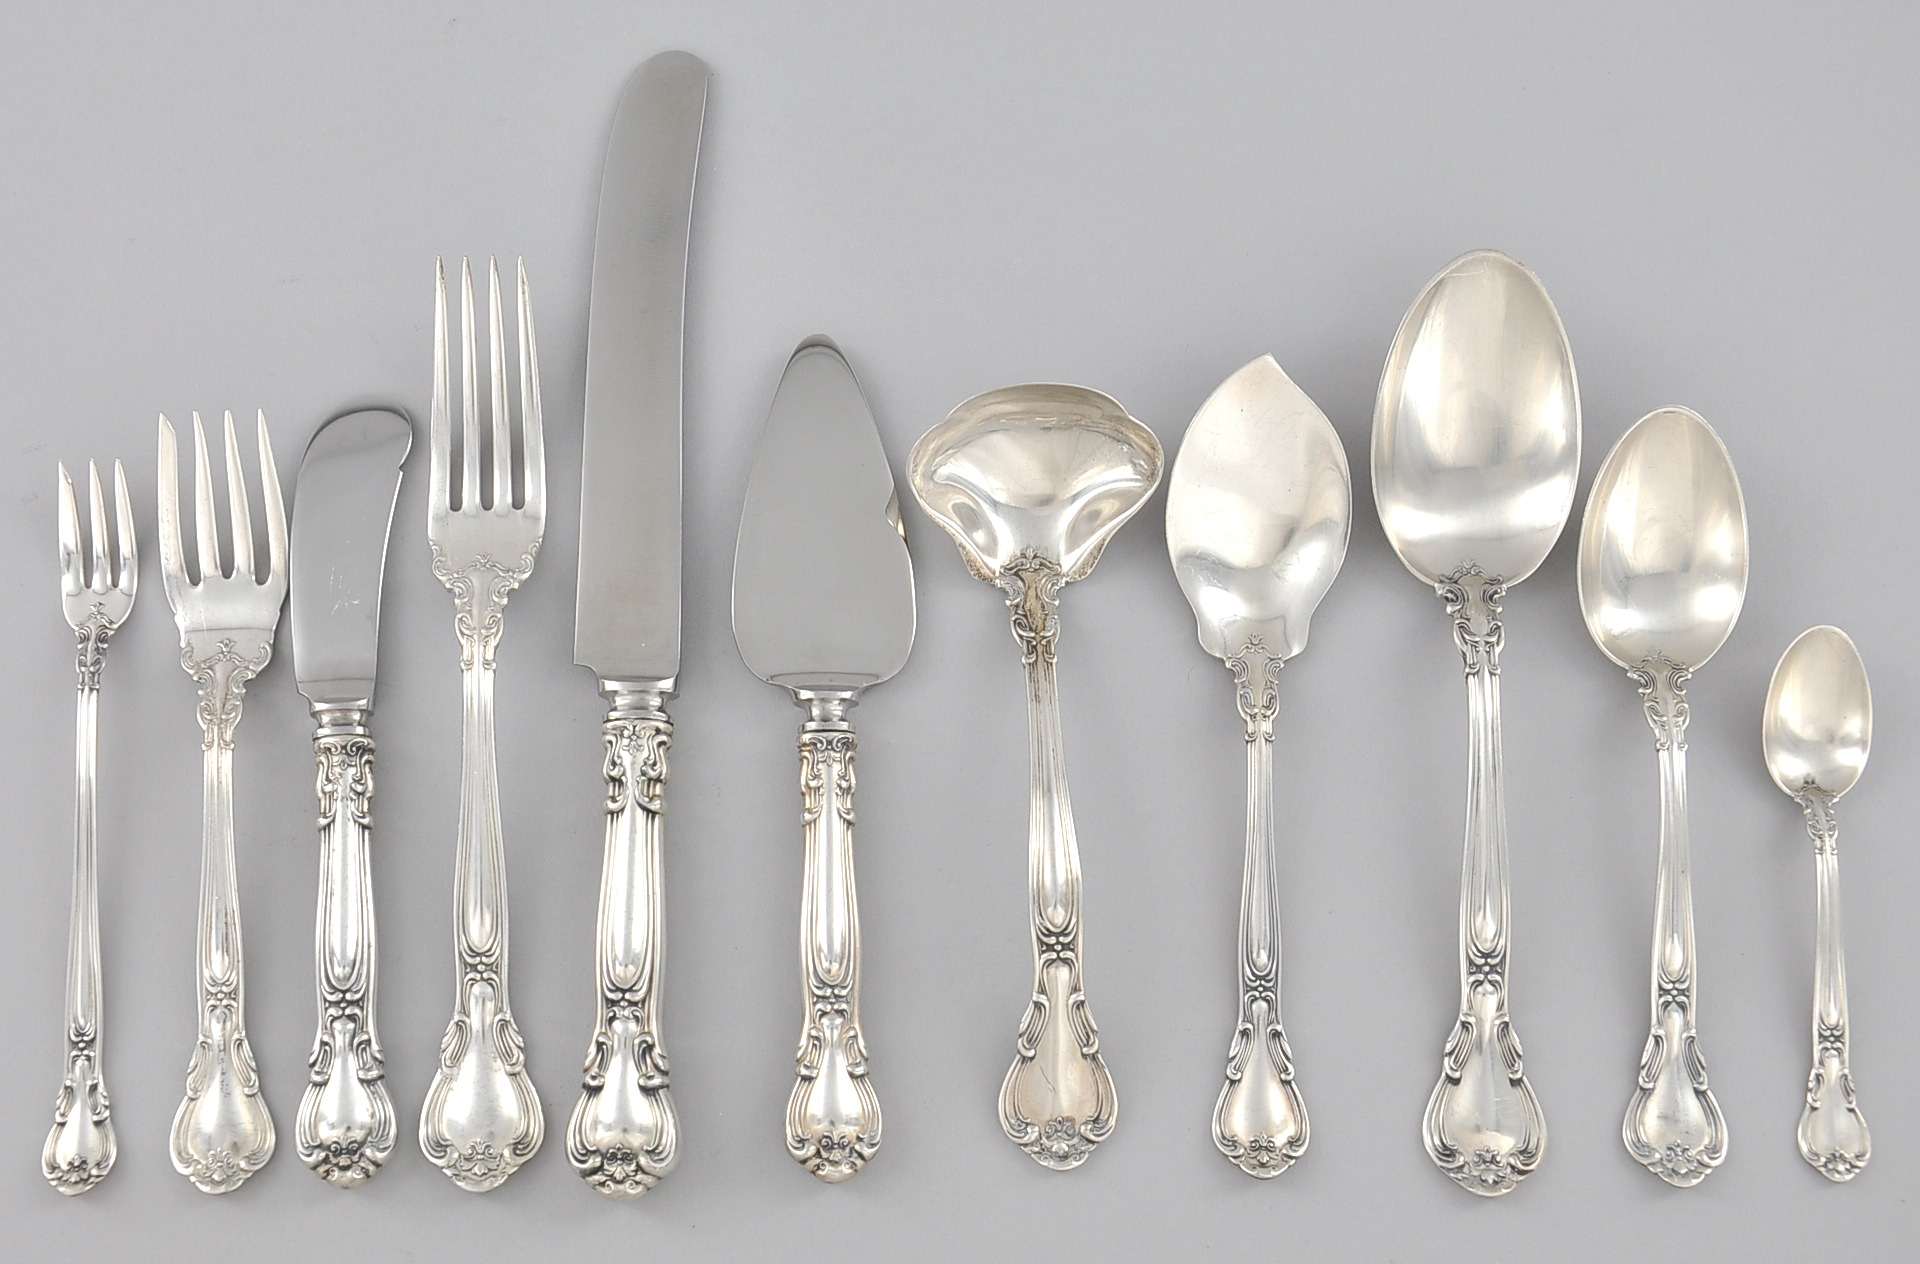 Brilliant gorham silver for kitchen and dining sets with gorham silver patterns